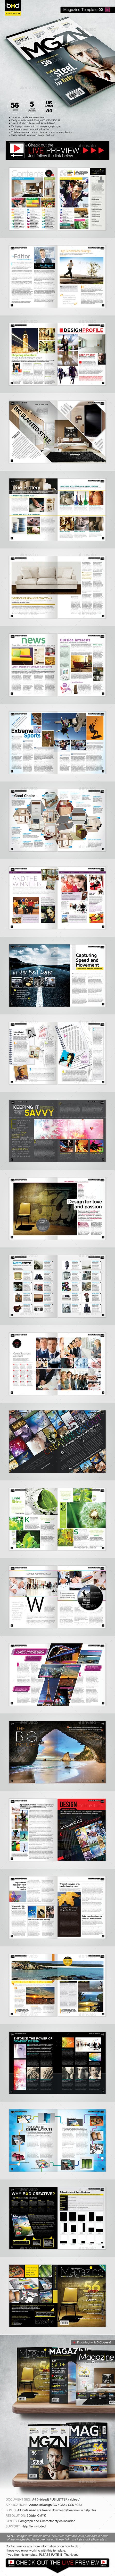 Magazine Template - InDesign 56 Page Layout V2 - Magazines Print Templates